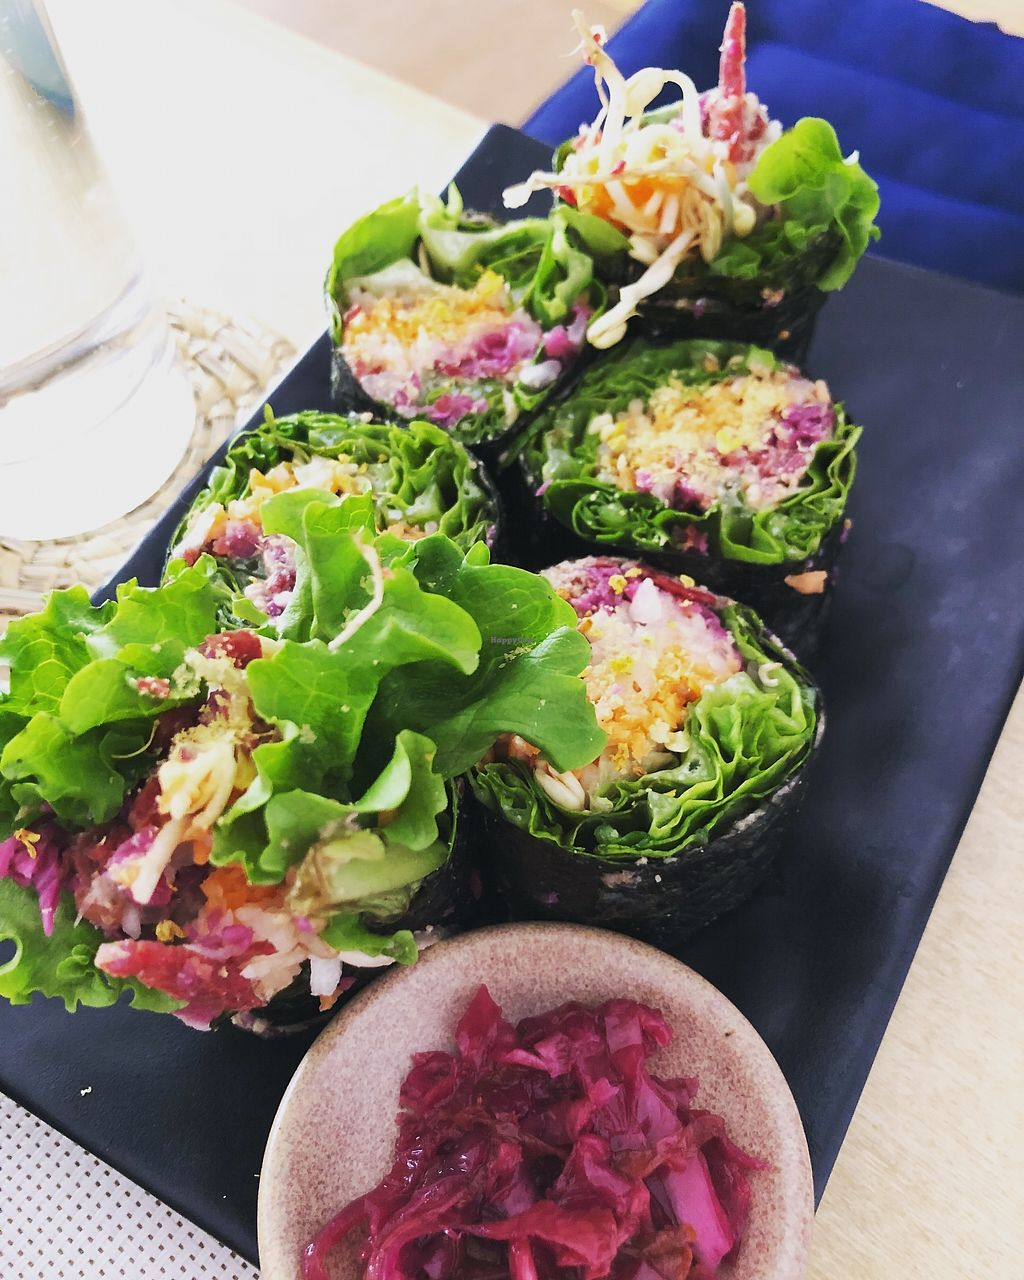 """Photo of Bliss Pure Foods  by <a href=""""/members/profile/KathrynSunantha"""">KathrynSunantha</a> <br/>Raw vegan sushi <br/> March 5, 2018  - <a href='/contact/abuse/image/70969/367029'>Report</a>"""